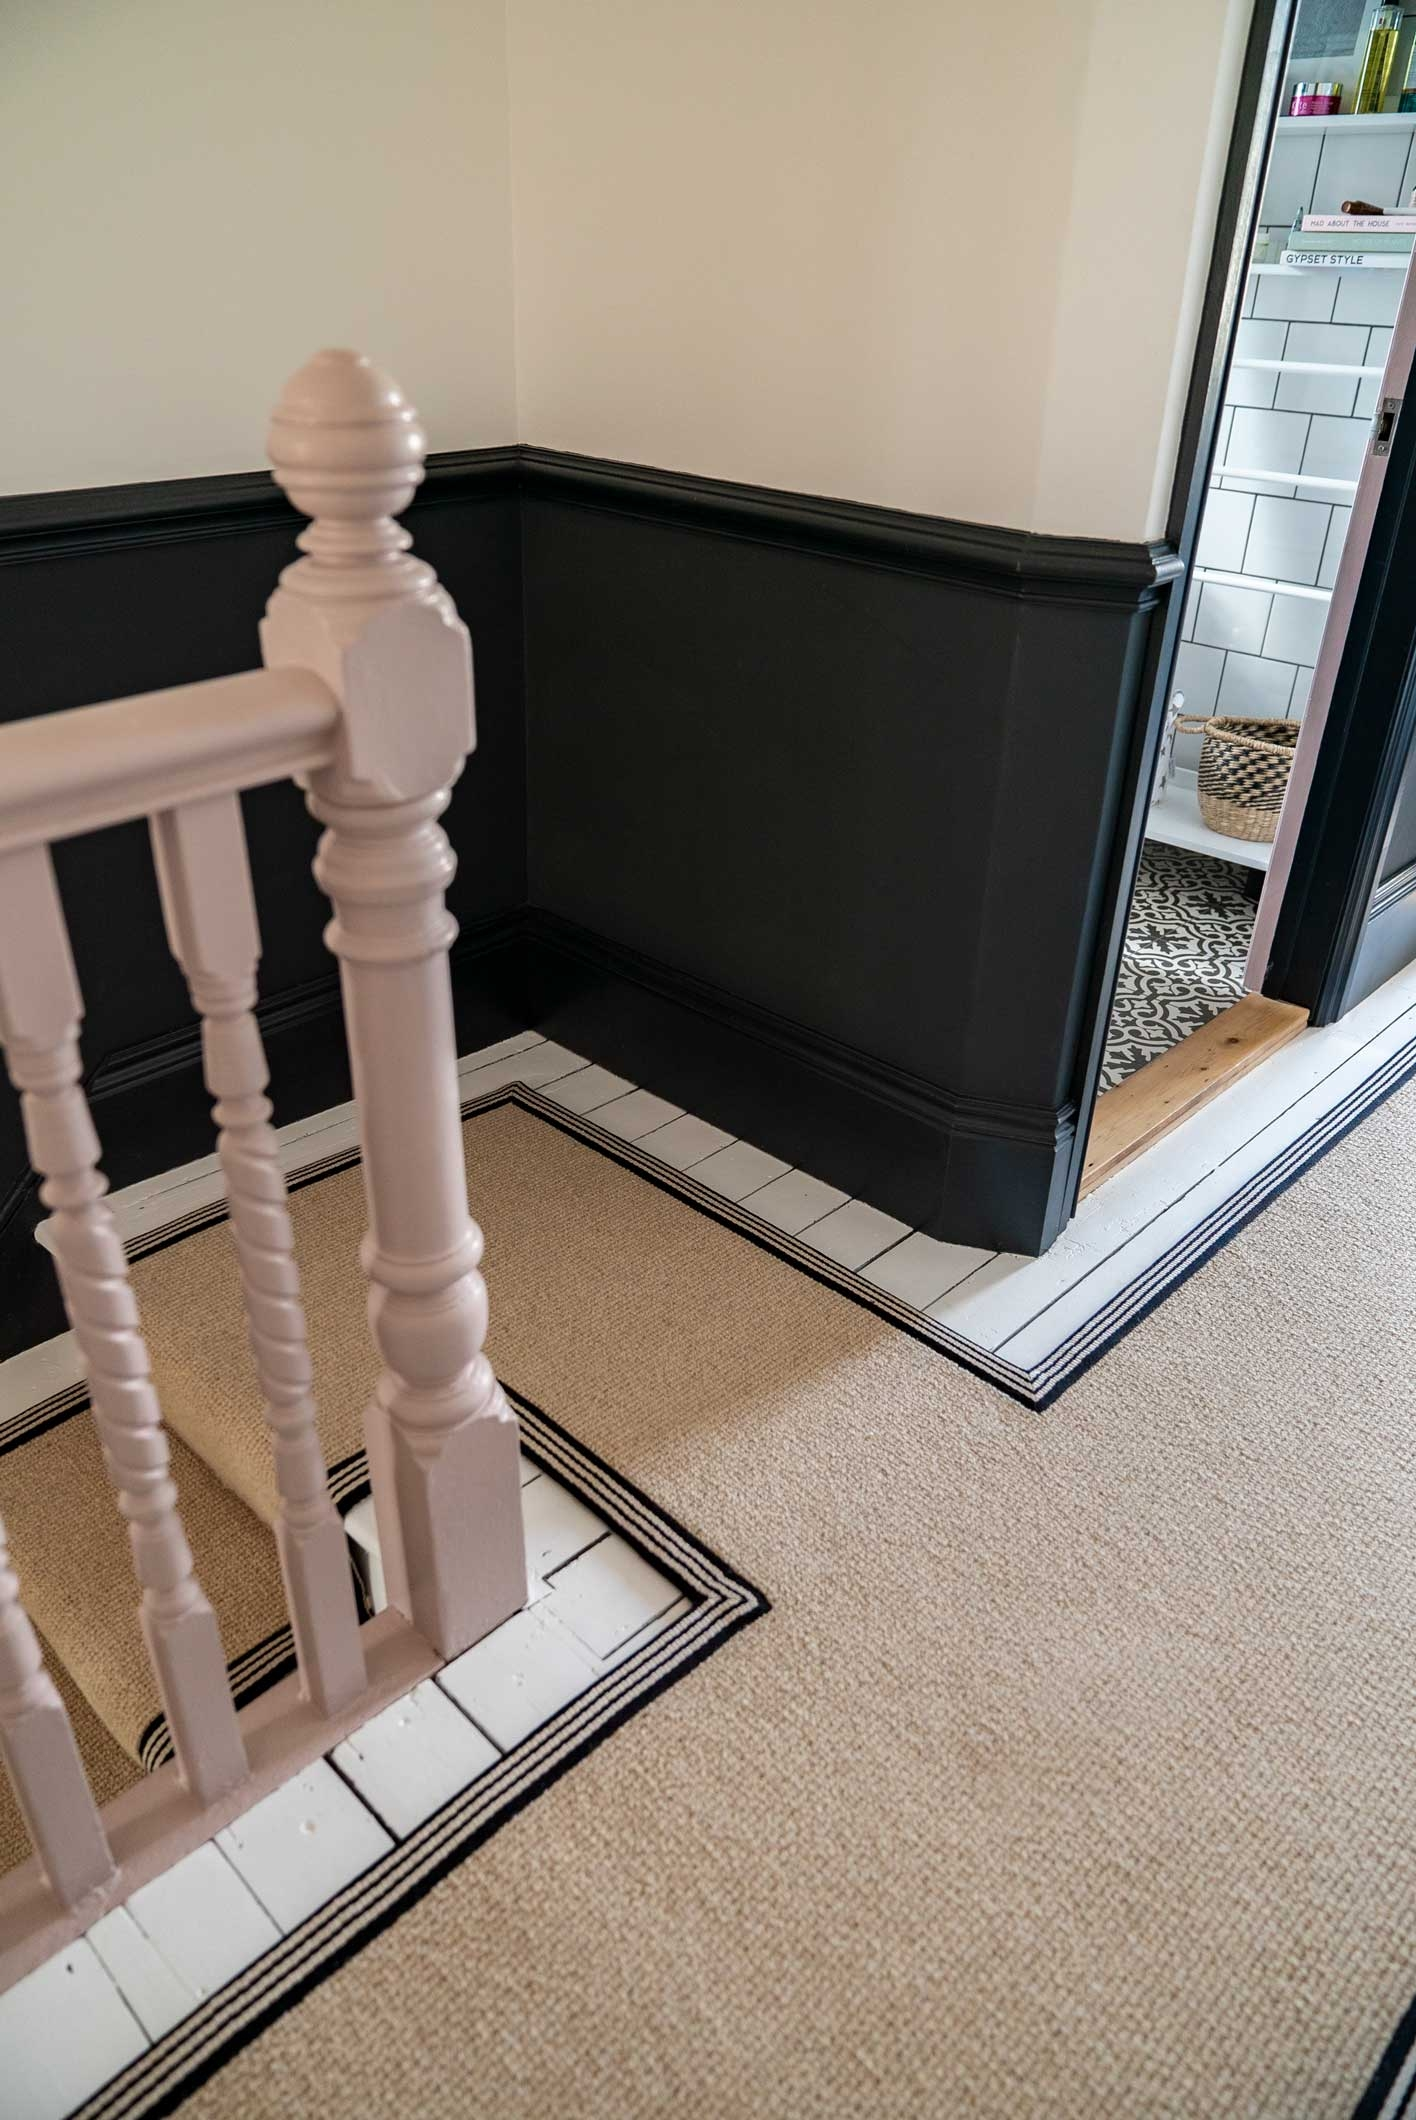 How To Achieve Your Perfect Stair Runner The Frugality | End Of The Roll Stair Runners | Roger Oates | Staircase Makeover | Wall Carpet | Hallway Carpet | Stair Treads